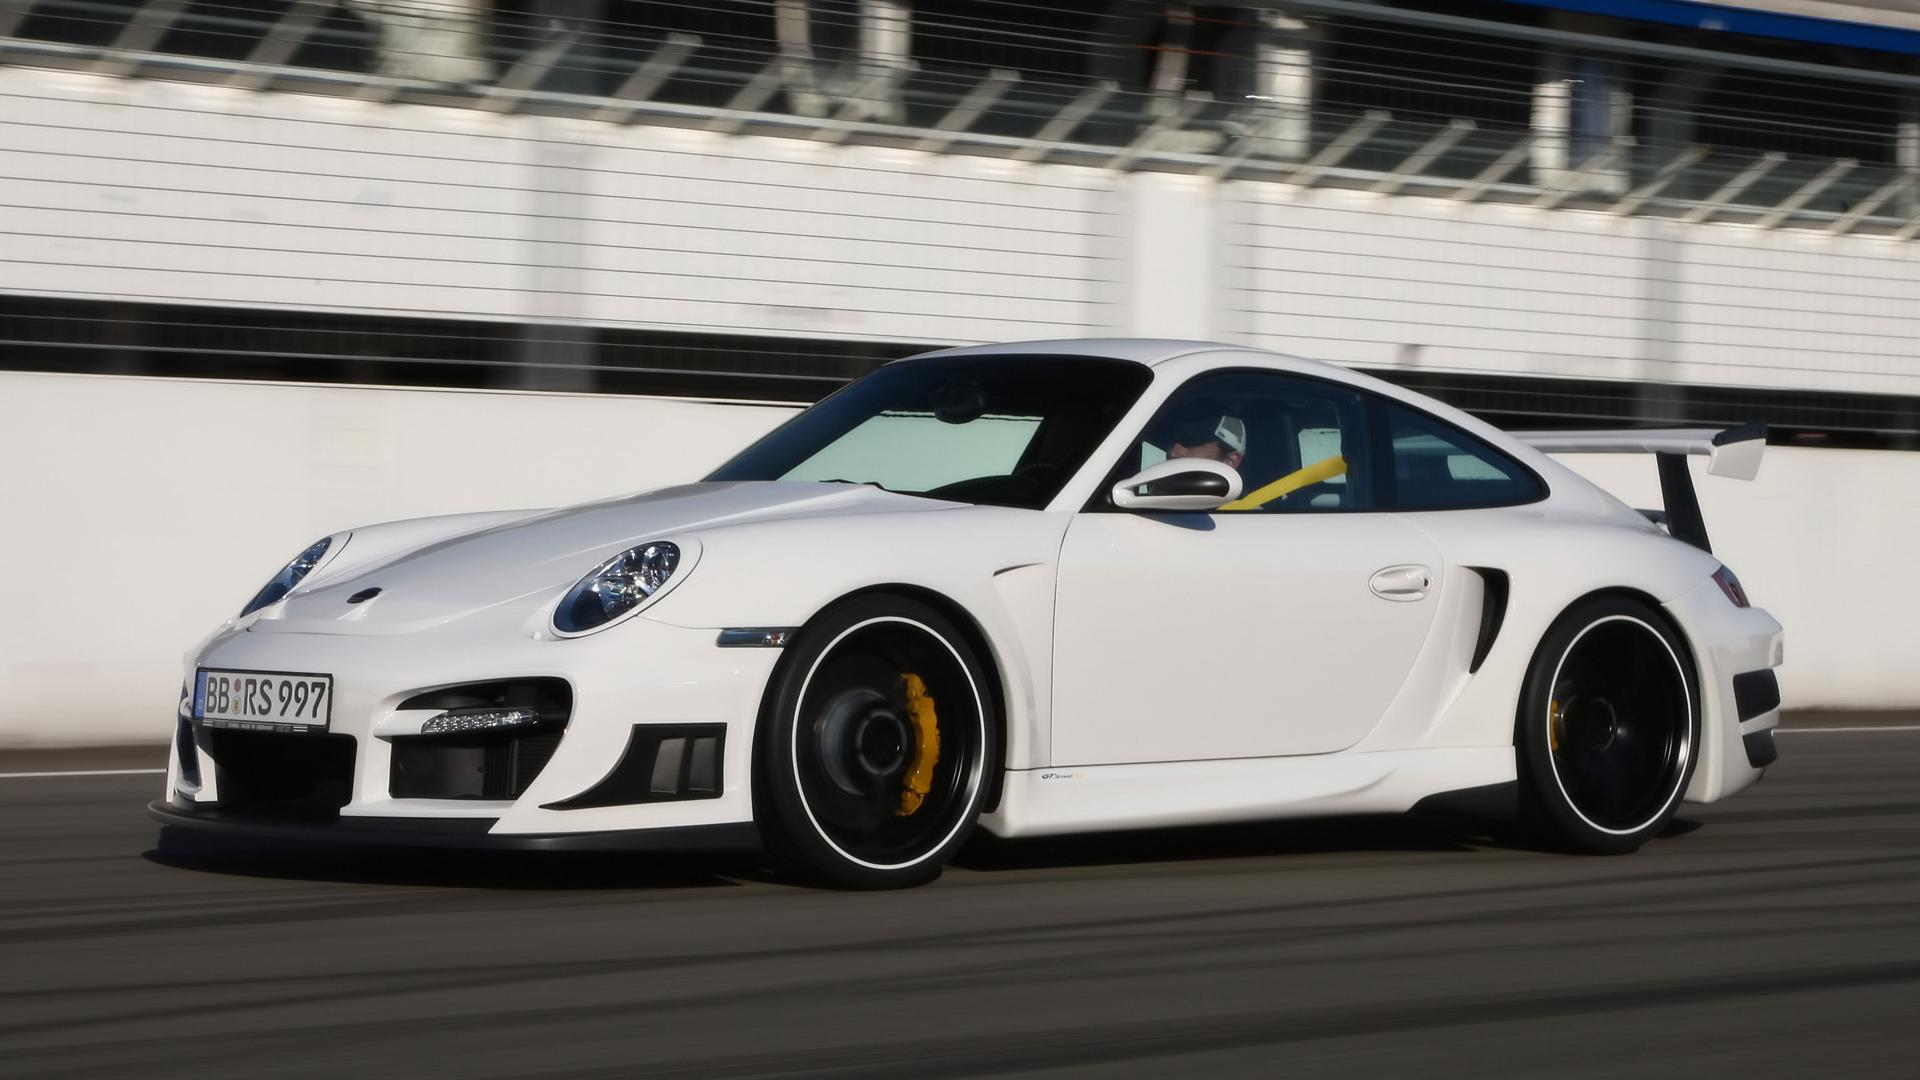 New Car 2013 Hd Porsche Car-Wallpaper ...